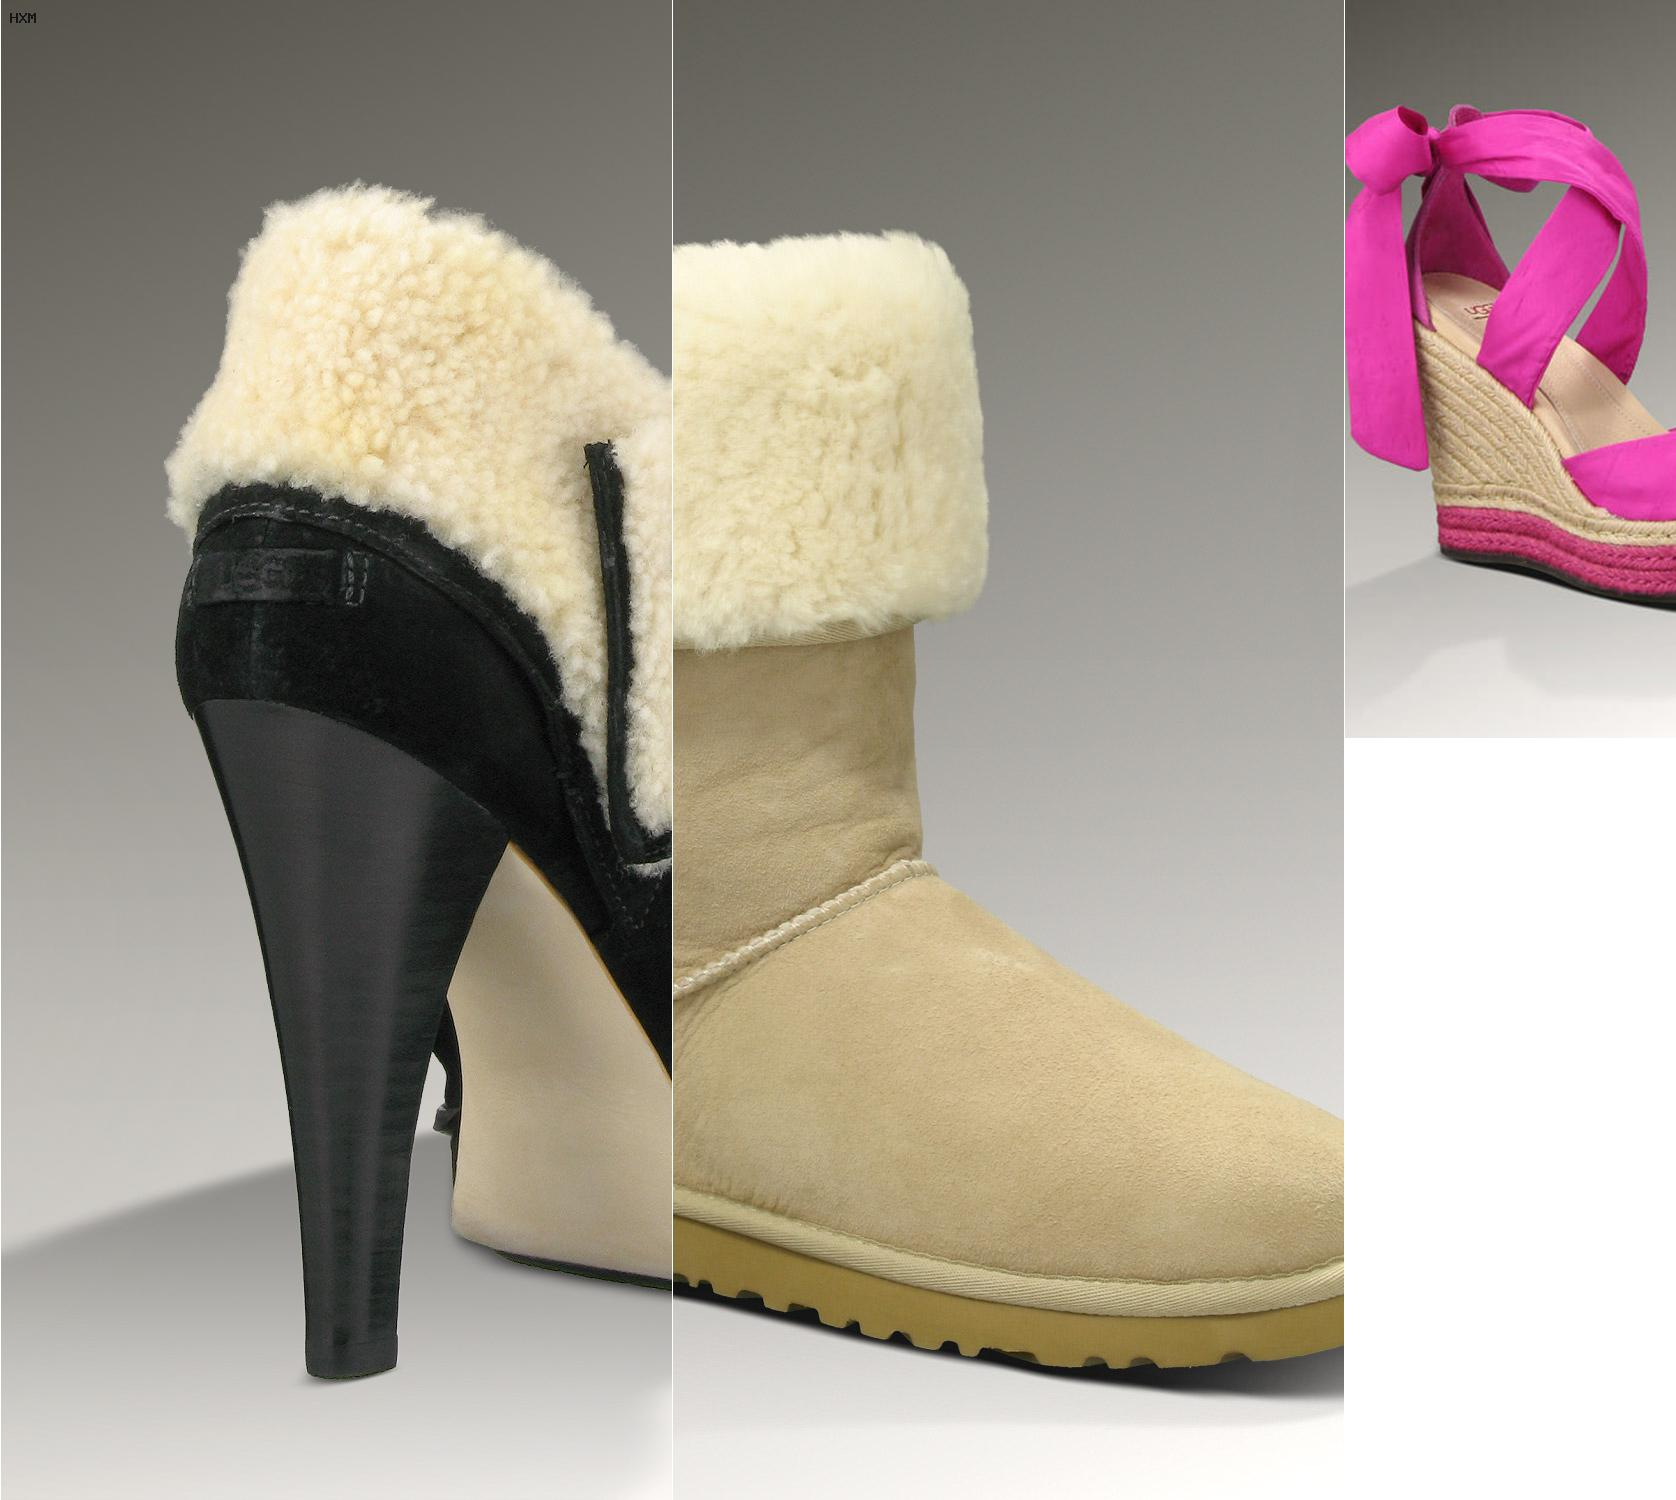 ugg outlet elizabeth nj